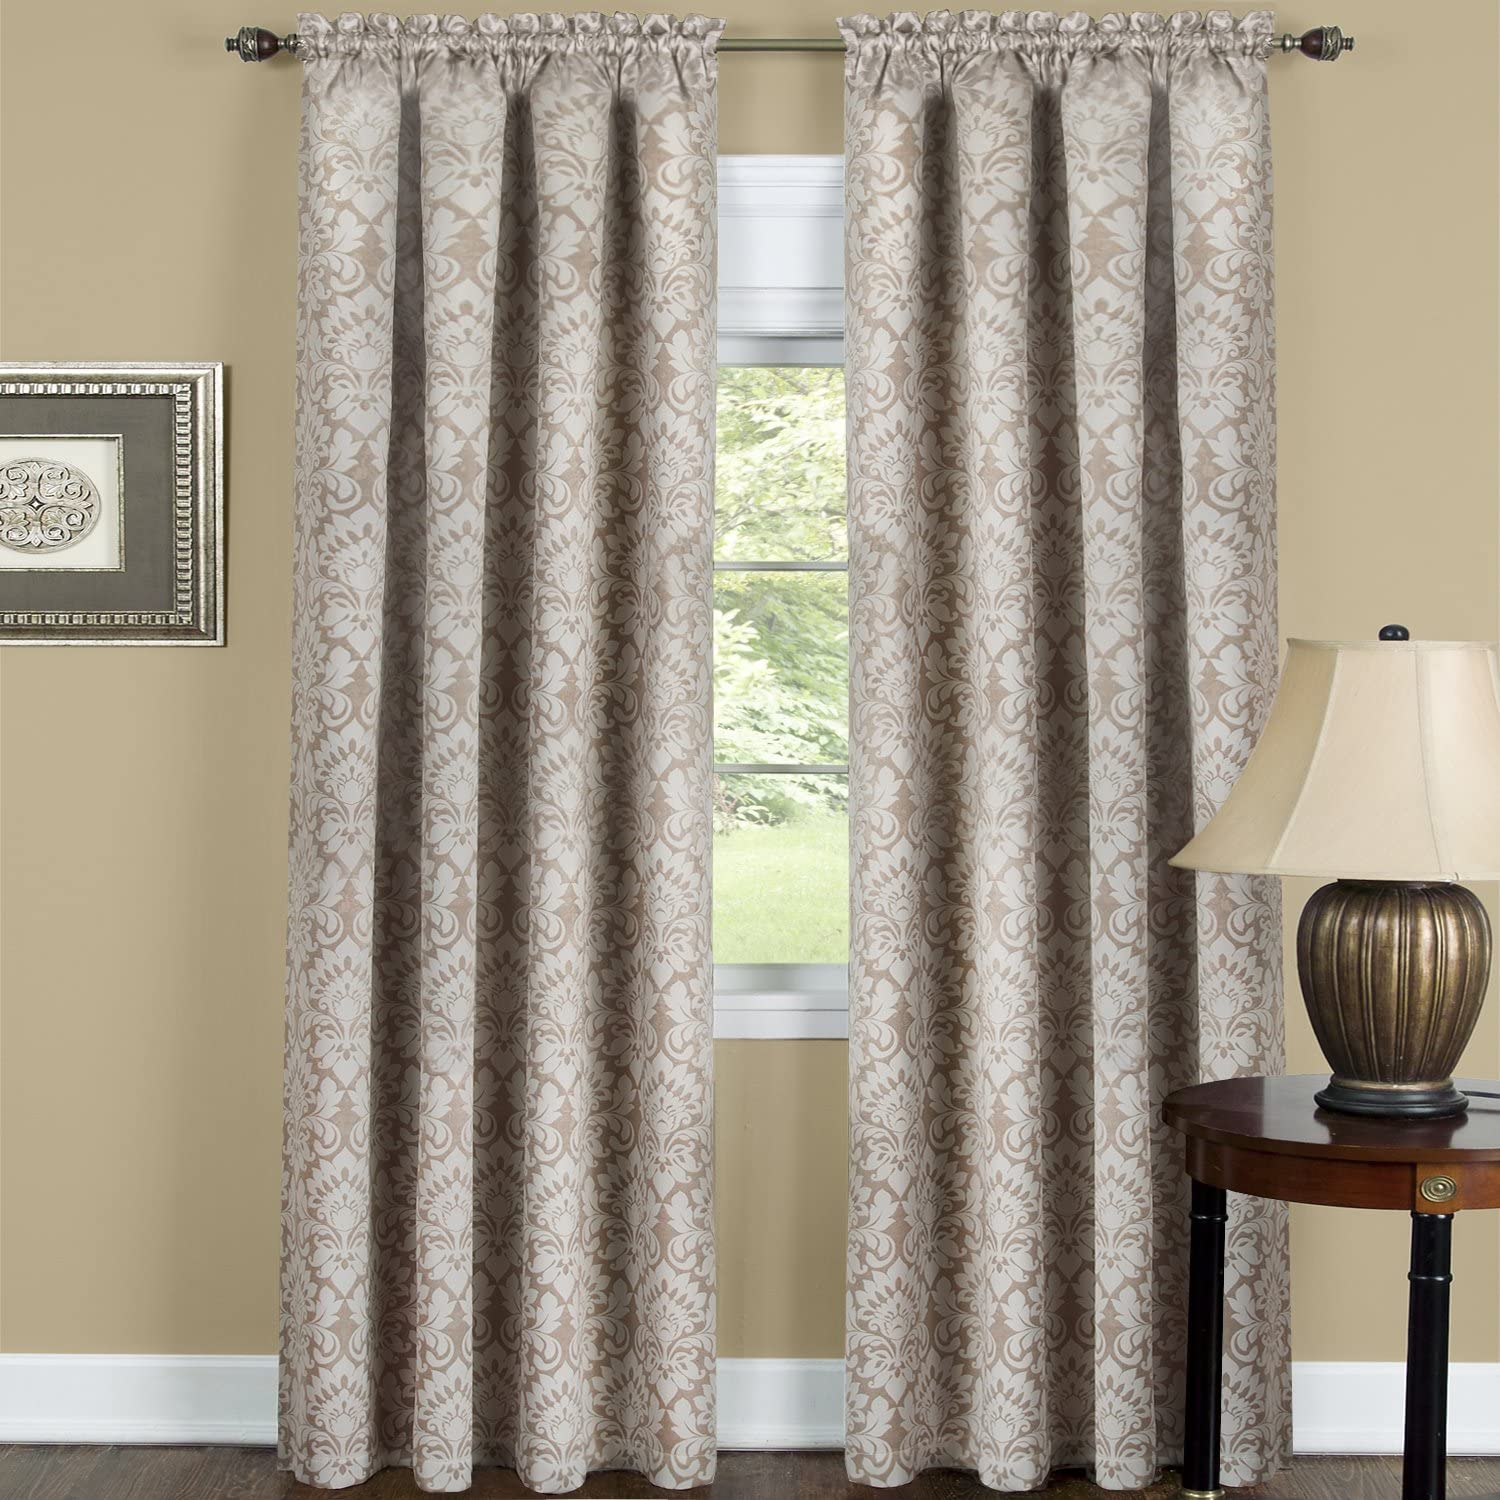 Achim Home Furnishings Sutton Blackout Panel, 52-Inch by 63-Inch, Tan